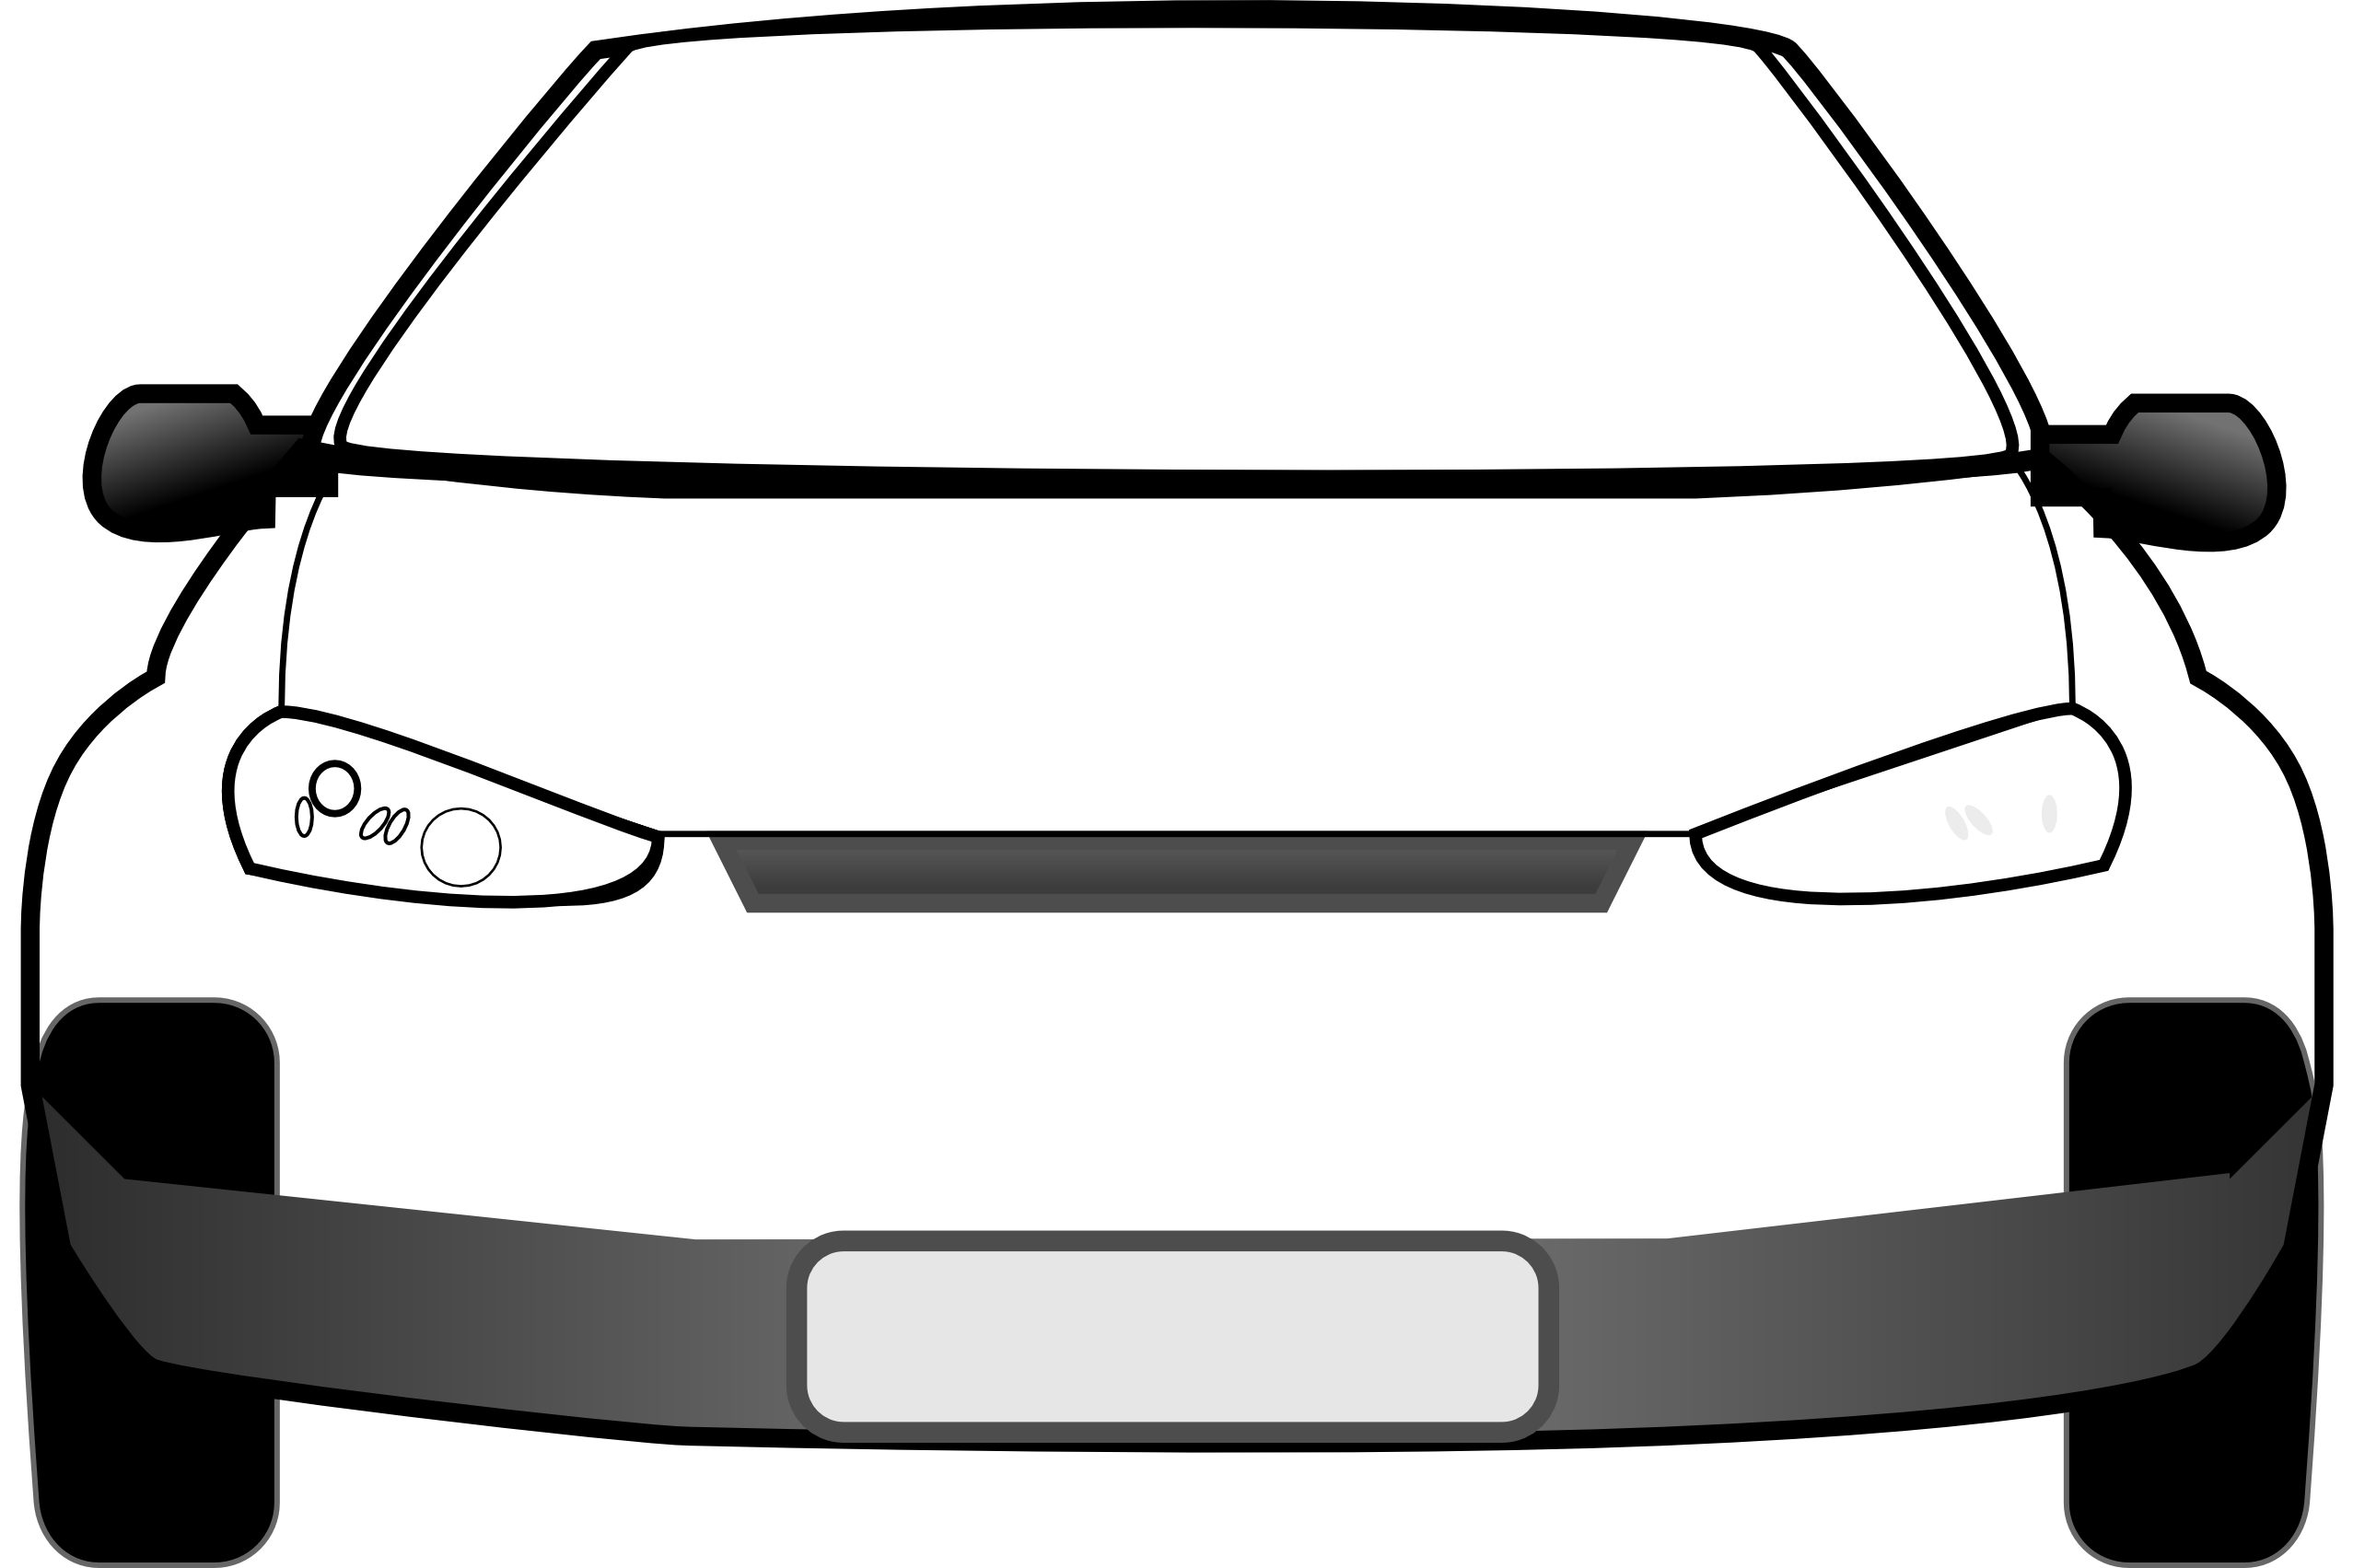 Clipart car from front view.